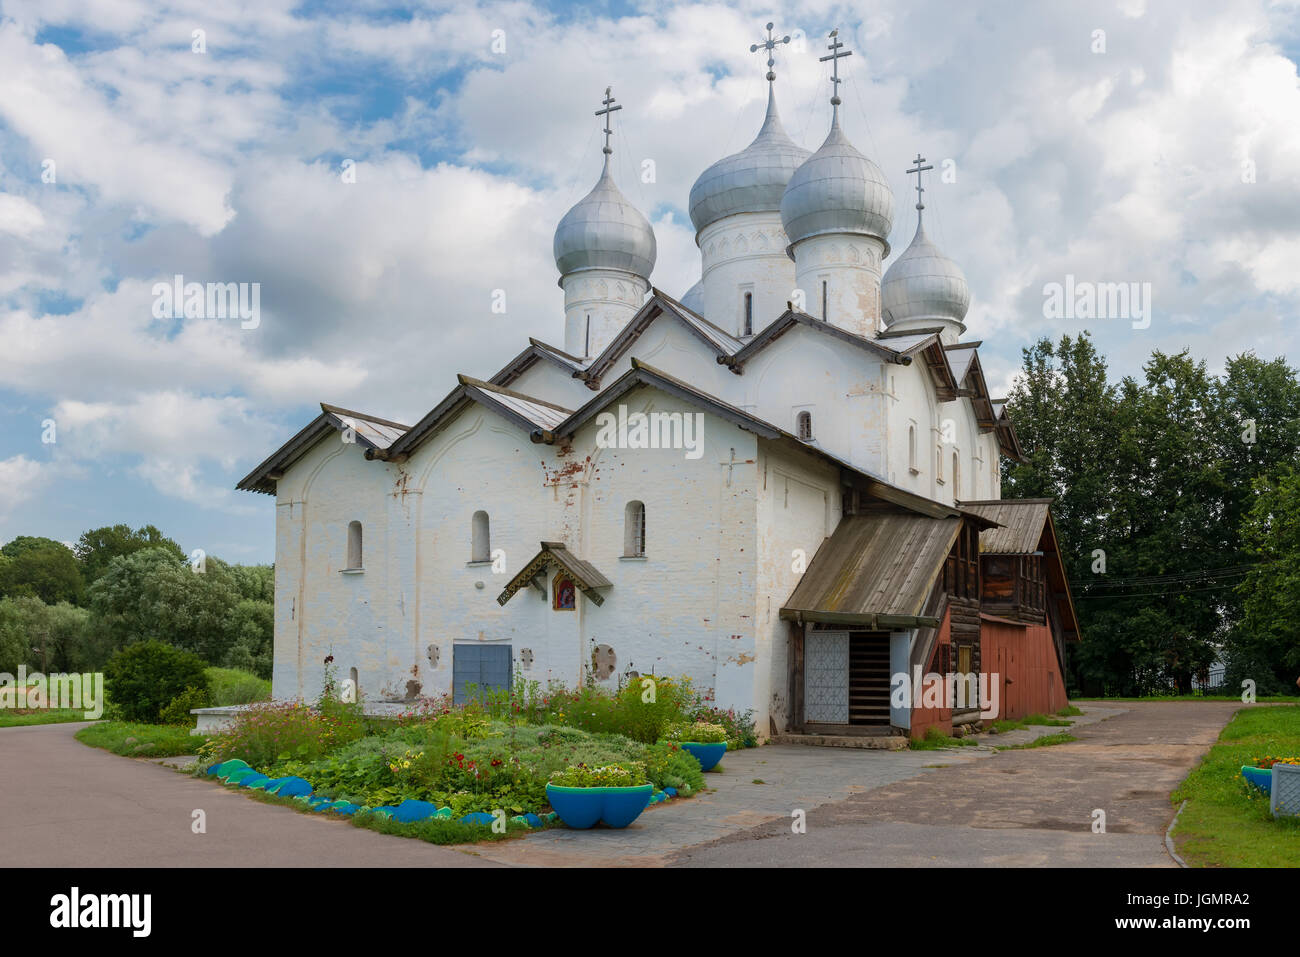 The Church of Boris and Gleb in Carpenters. Veliky Novgorod. Russia. - Stock Image